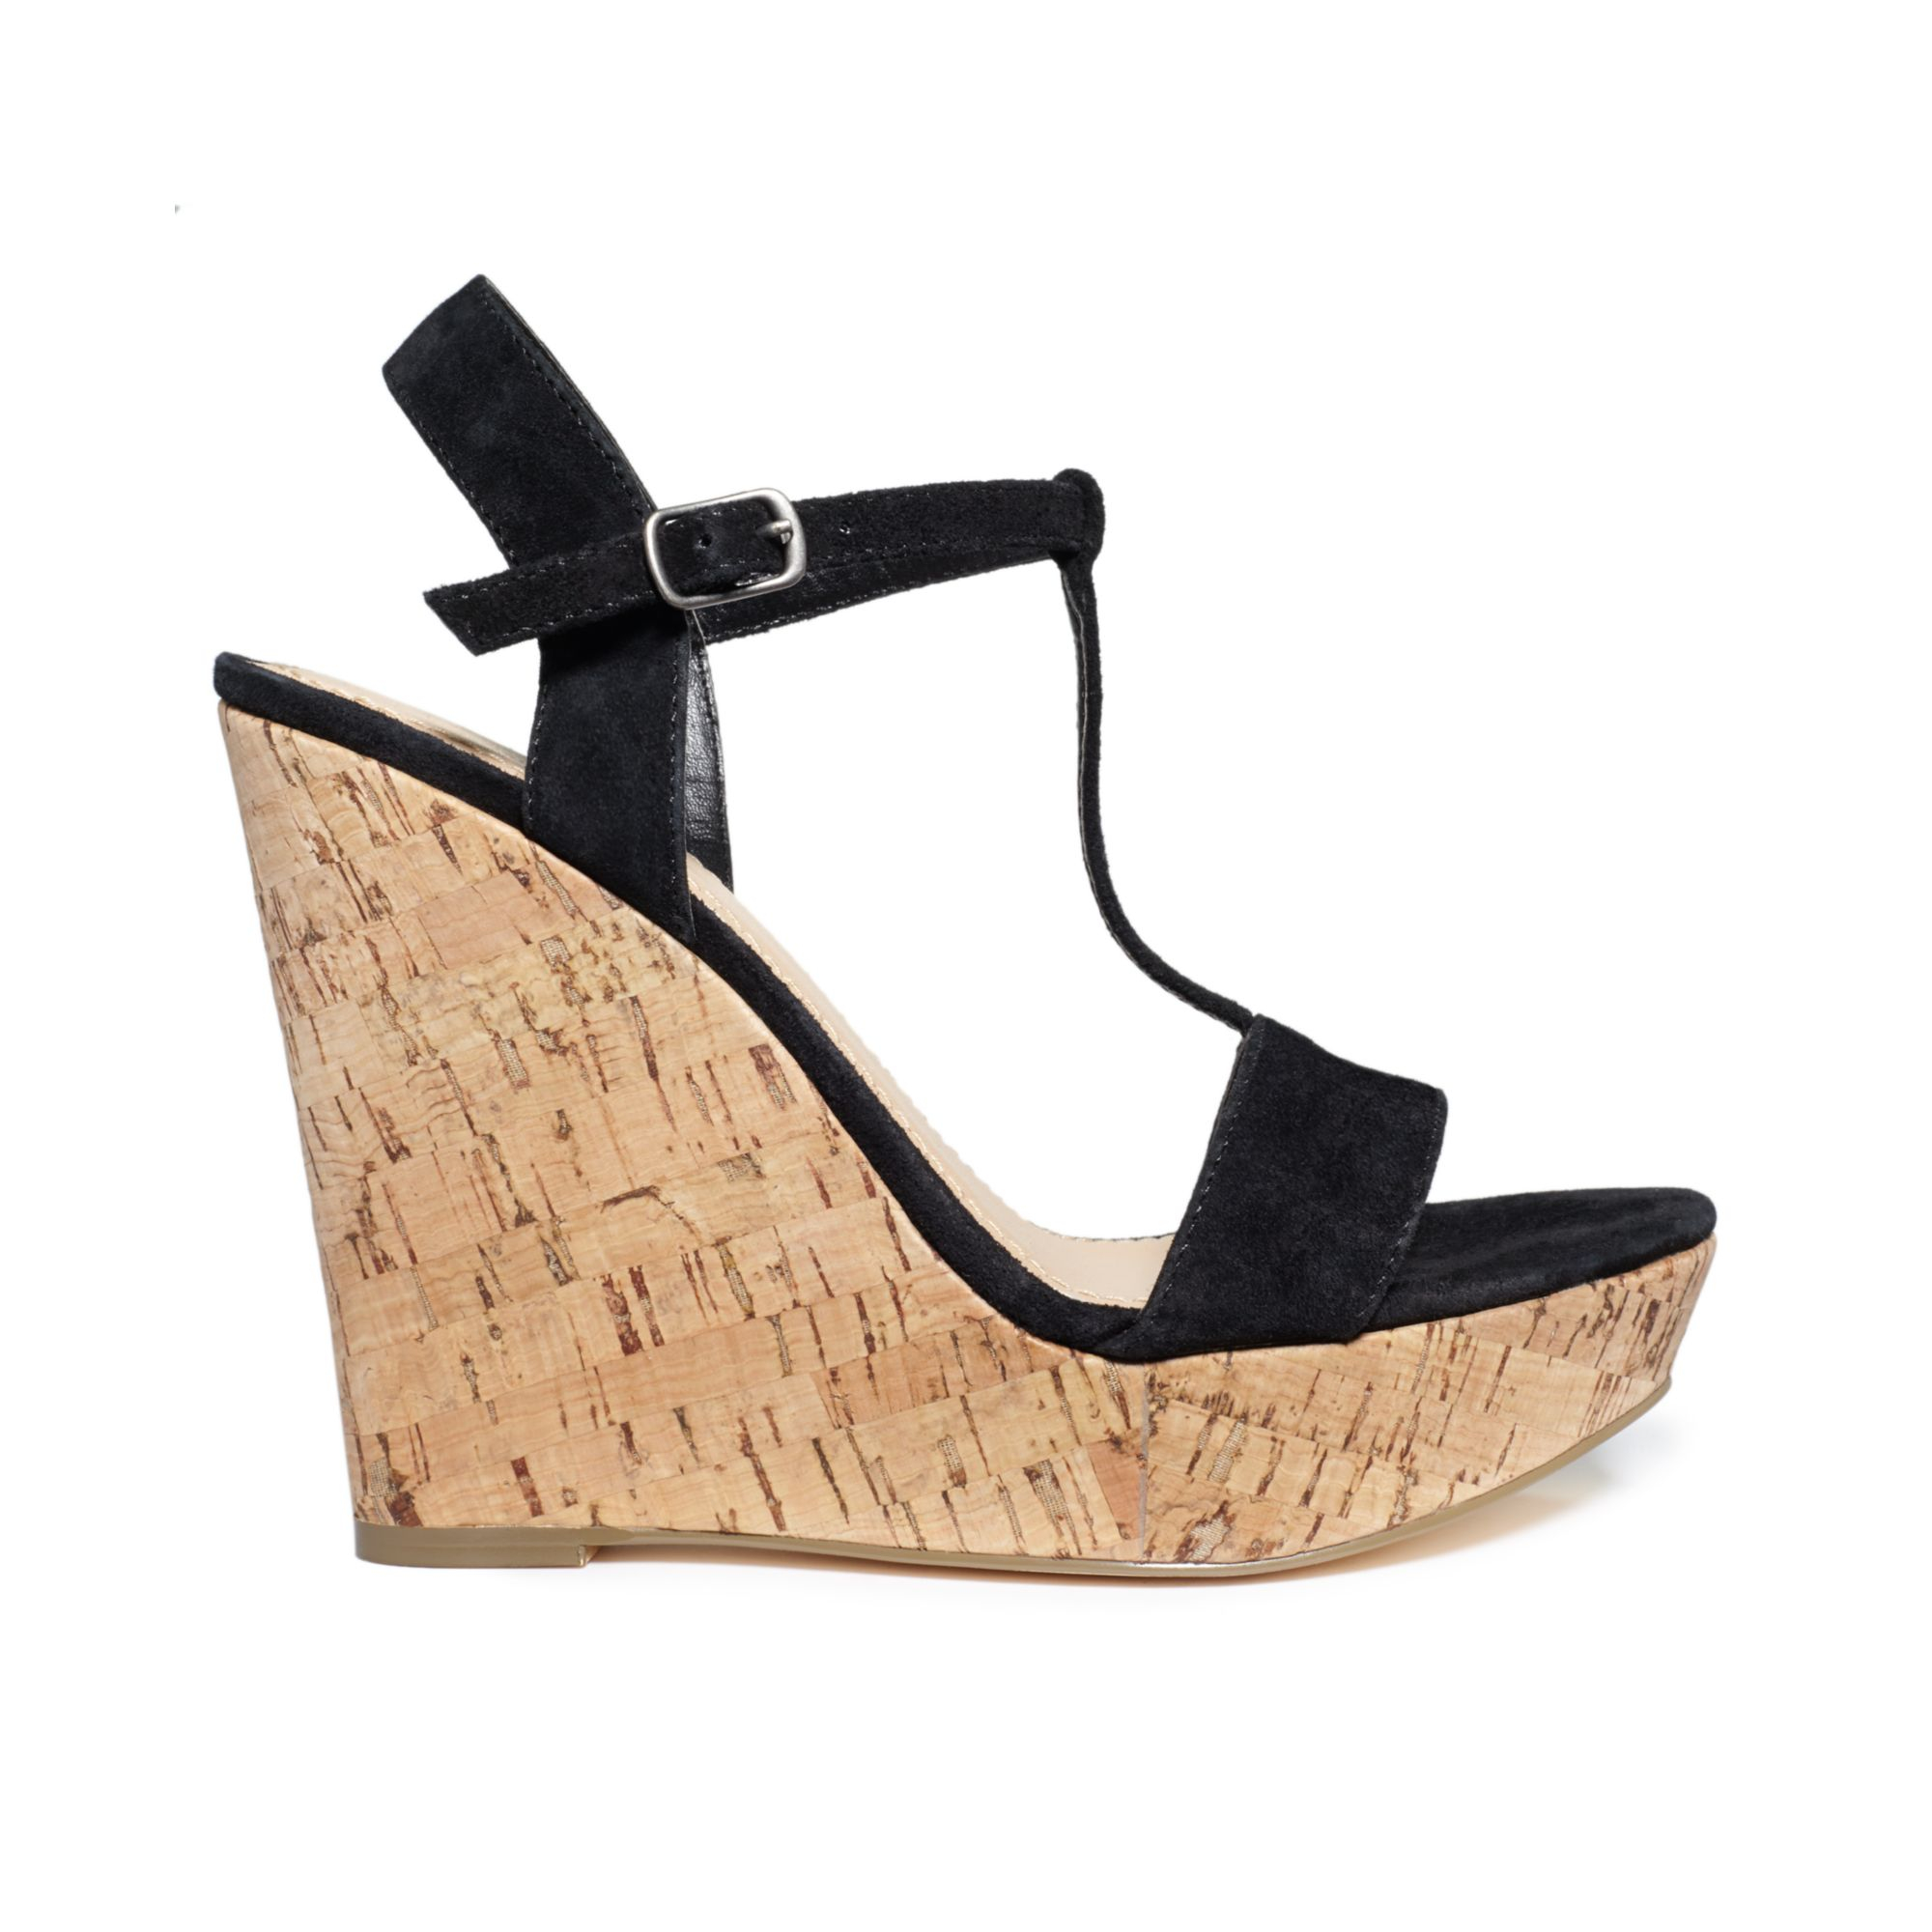 717ade77eccb Charles By Charles David Feature Women Open Toe Synthetic Black Wedge  Sandal See Details Product - Charles By Charles David Sweetness Women  Pointed Toe ...